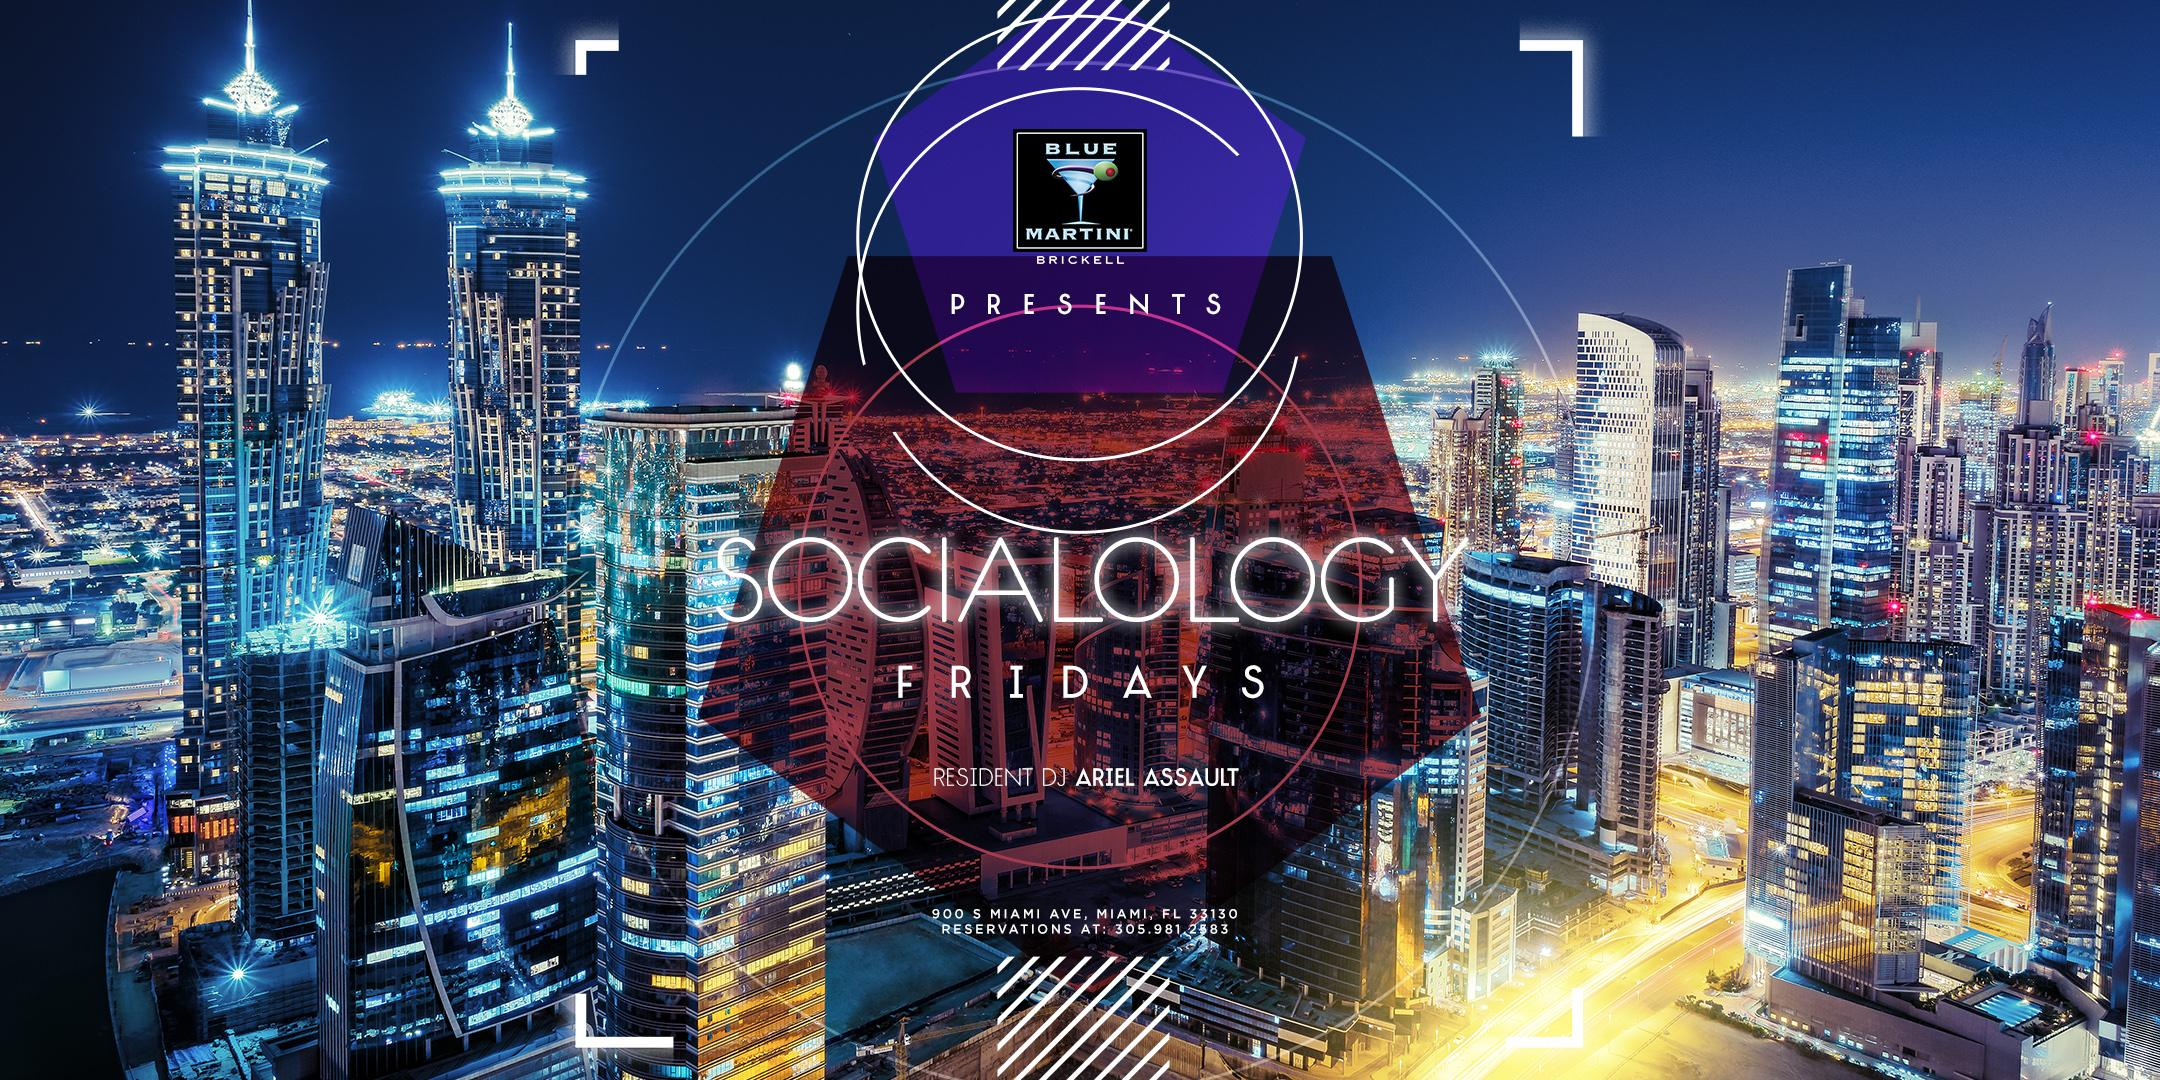 Free Admission to Blue Martini Brickell Friday